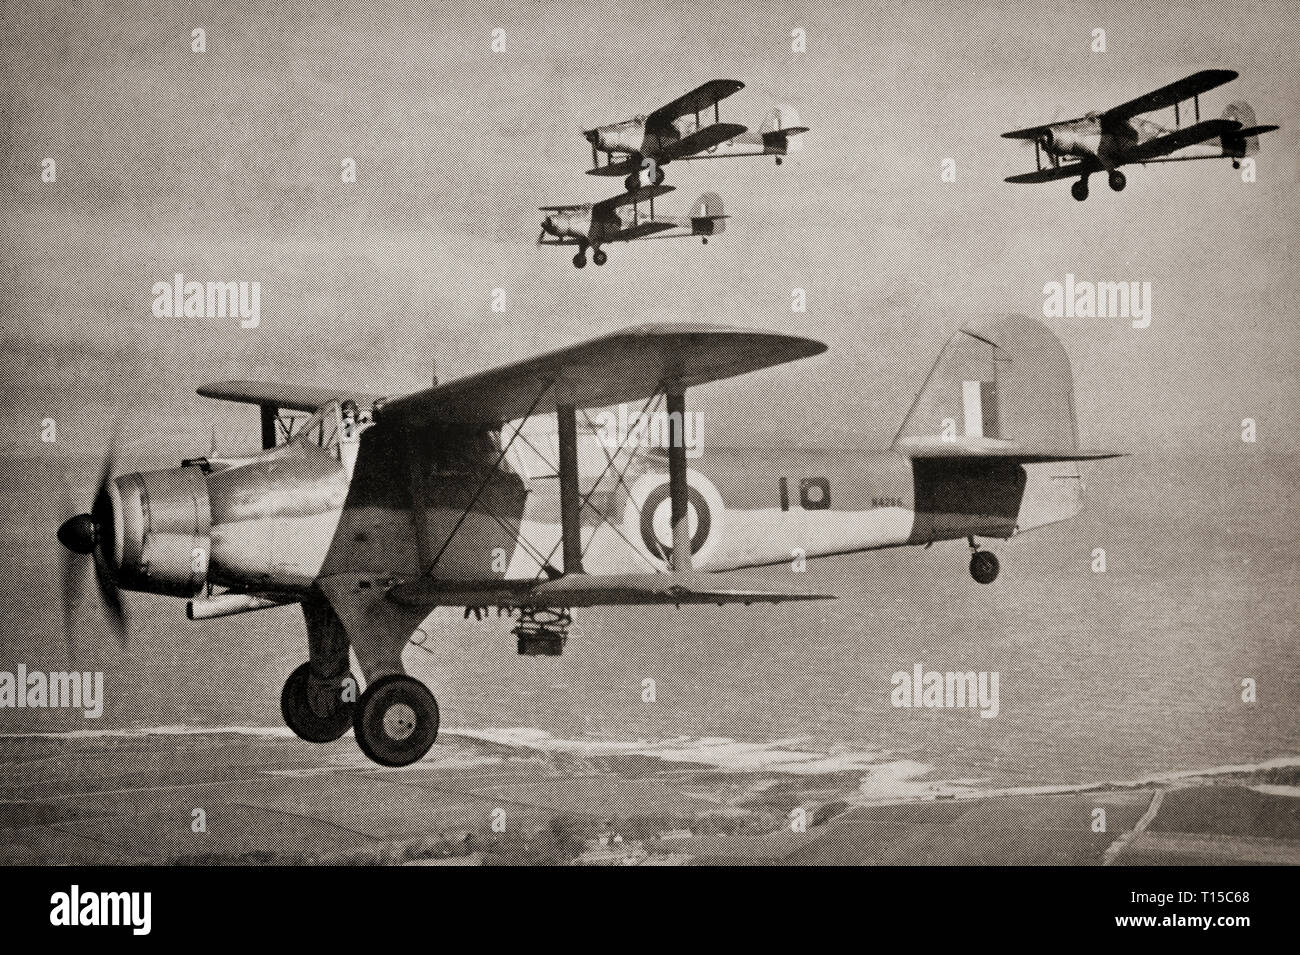 A Flight Of Fairey Albacores A British Single Engine Carrier Borne Biplane Torpedo Bomber Built By Fairey Aviation Between 1939 And 1943 For The Royal Navy Fleet Air Arm And Used During The Second